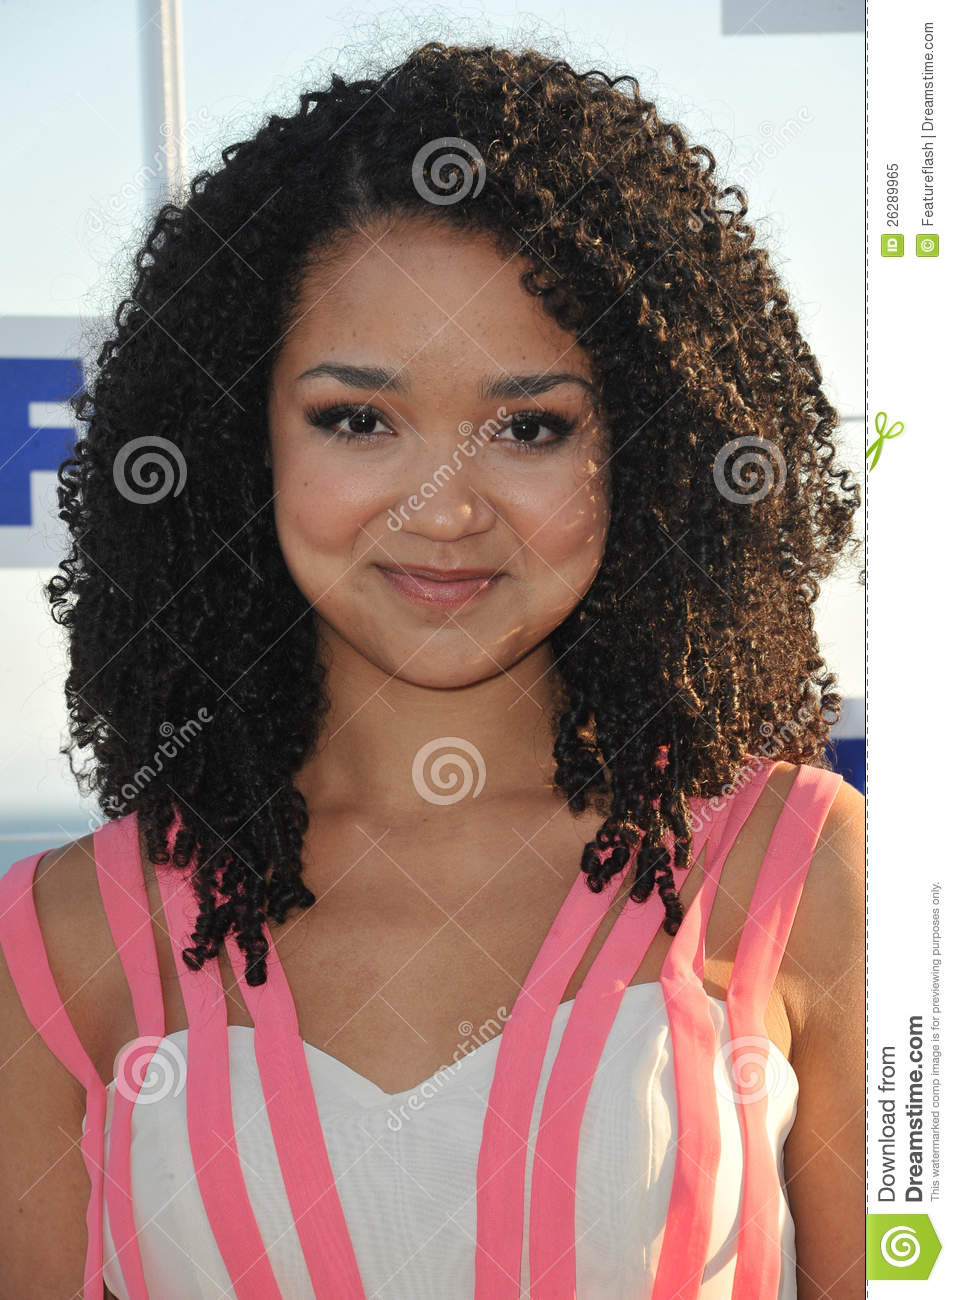 aisha dee height and weight